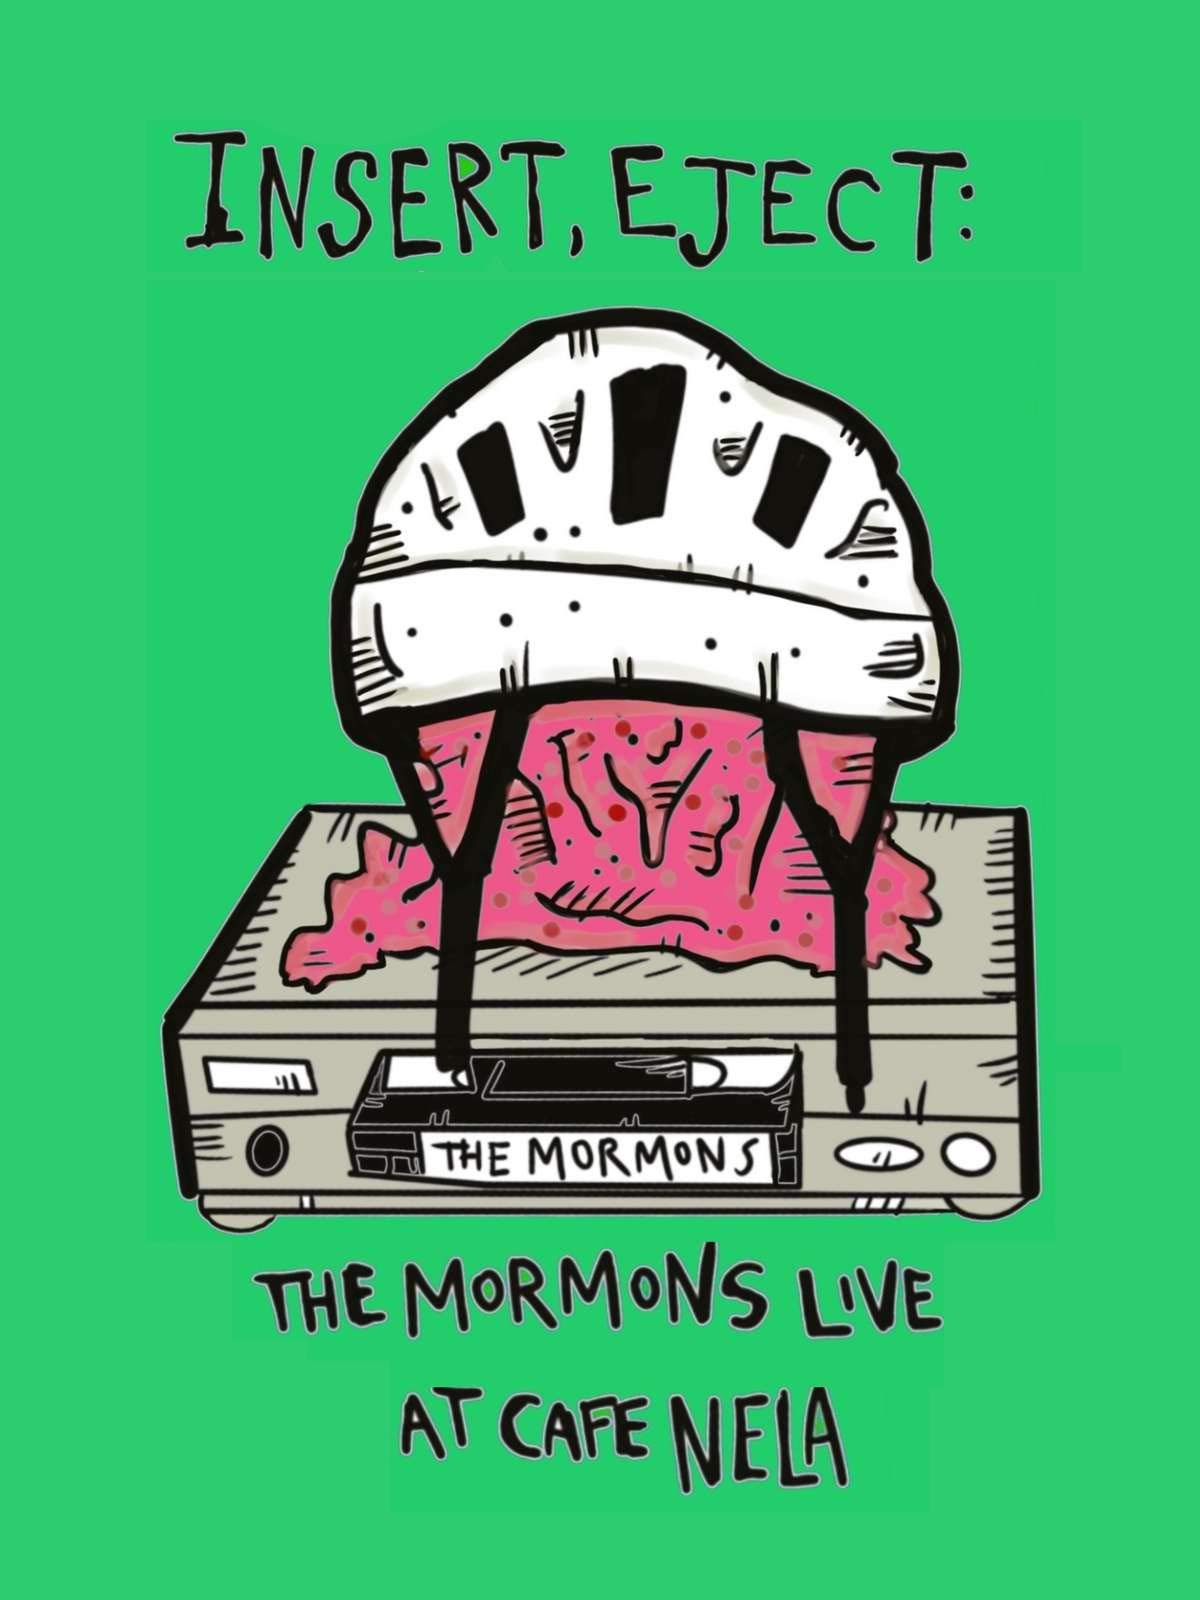 Insert, Eject: The Mormons Live at Cafe NELA on Amazon Prime Instant Video UK